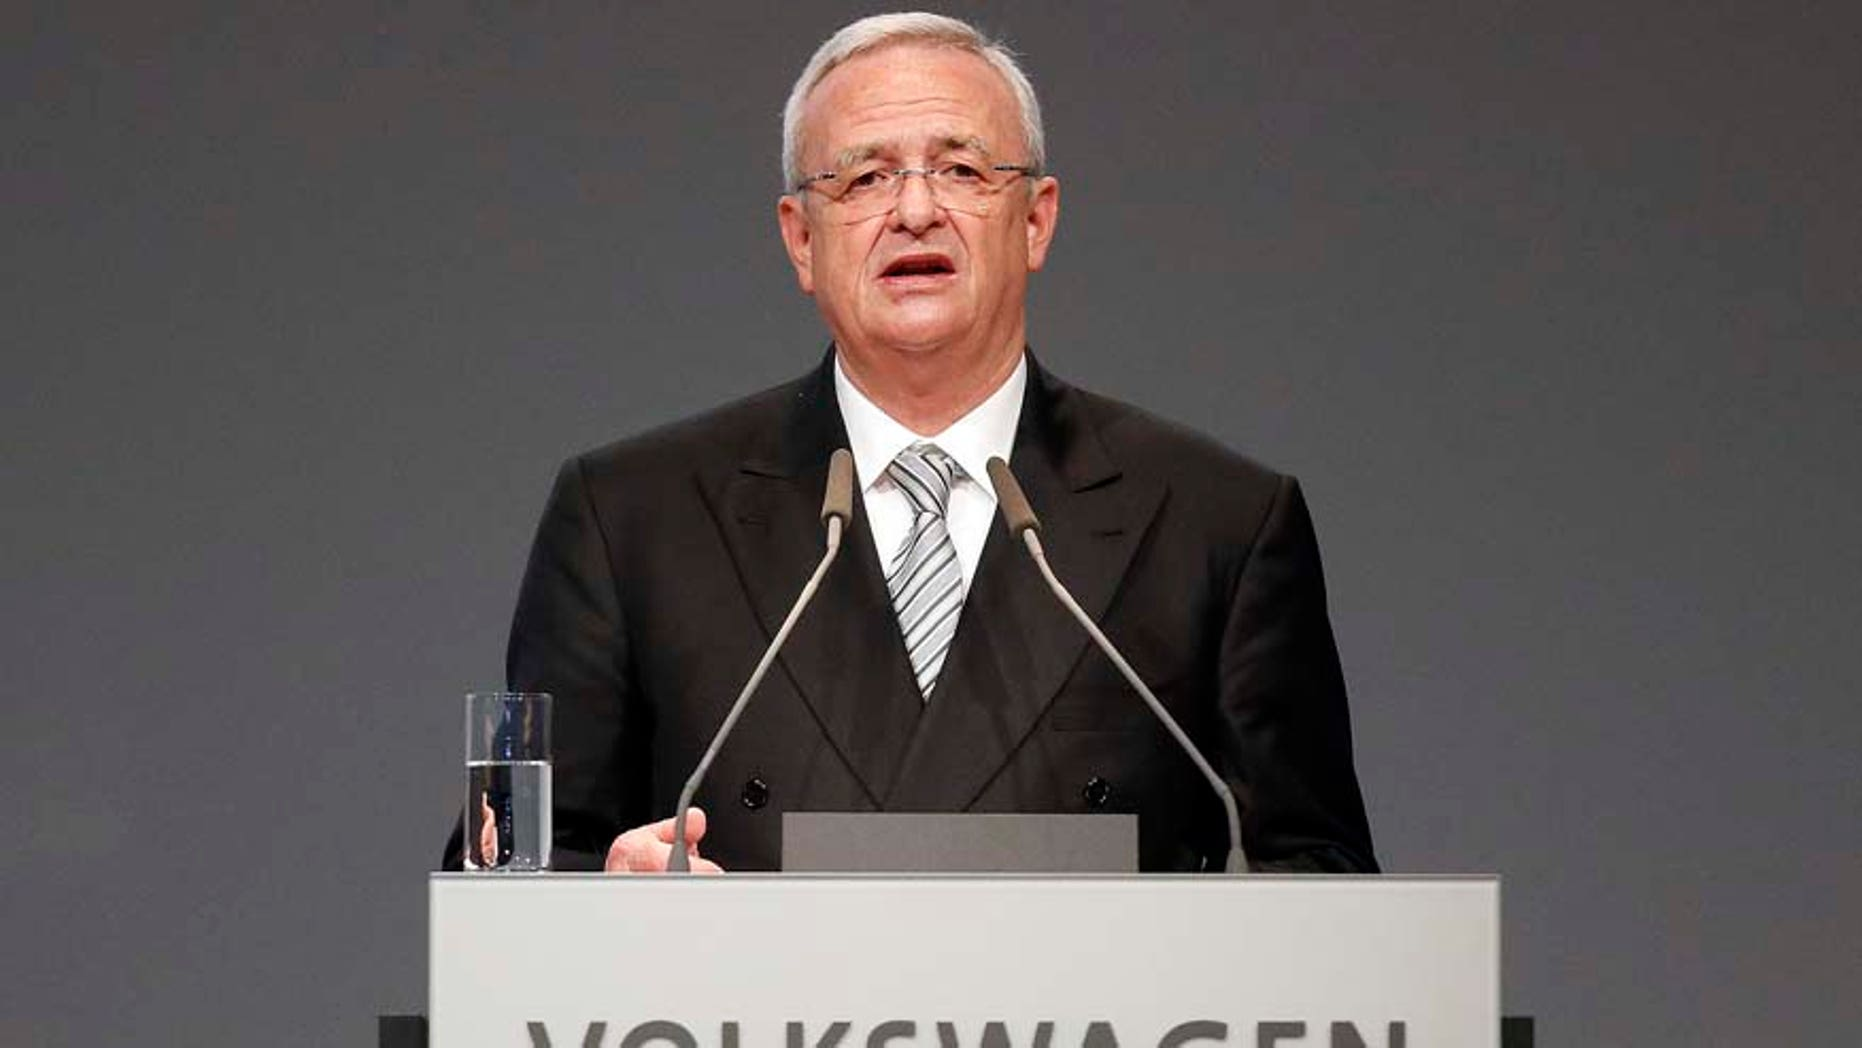 "FILE - In a Tuesday, May 5, 2015 file photo, Volkswagen CEO Martin Winterkorn addresses the shareholders during the annual shareholder meeting of the car manufacturer Volkswagen in Hannover, Germany. Winterkorn apologized Sunday, Sept. 20, 2015, after the Environmental Protection Agency said the German automaker skirted clean air rules by rigging emissions tests for about 500,000 diesel cars.  ""I personally am deeply sorry that we have broken the trust of our customers and the public,"" Volkswagen chief Martin Winterkorn said in a statement. (AP Photo/Frank Augstein, File)"